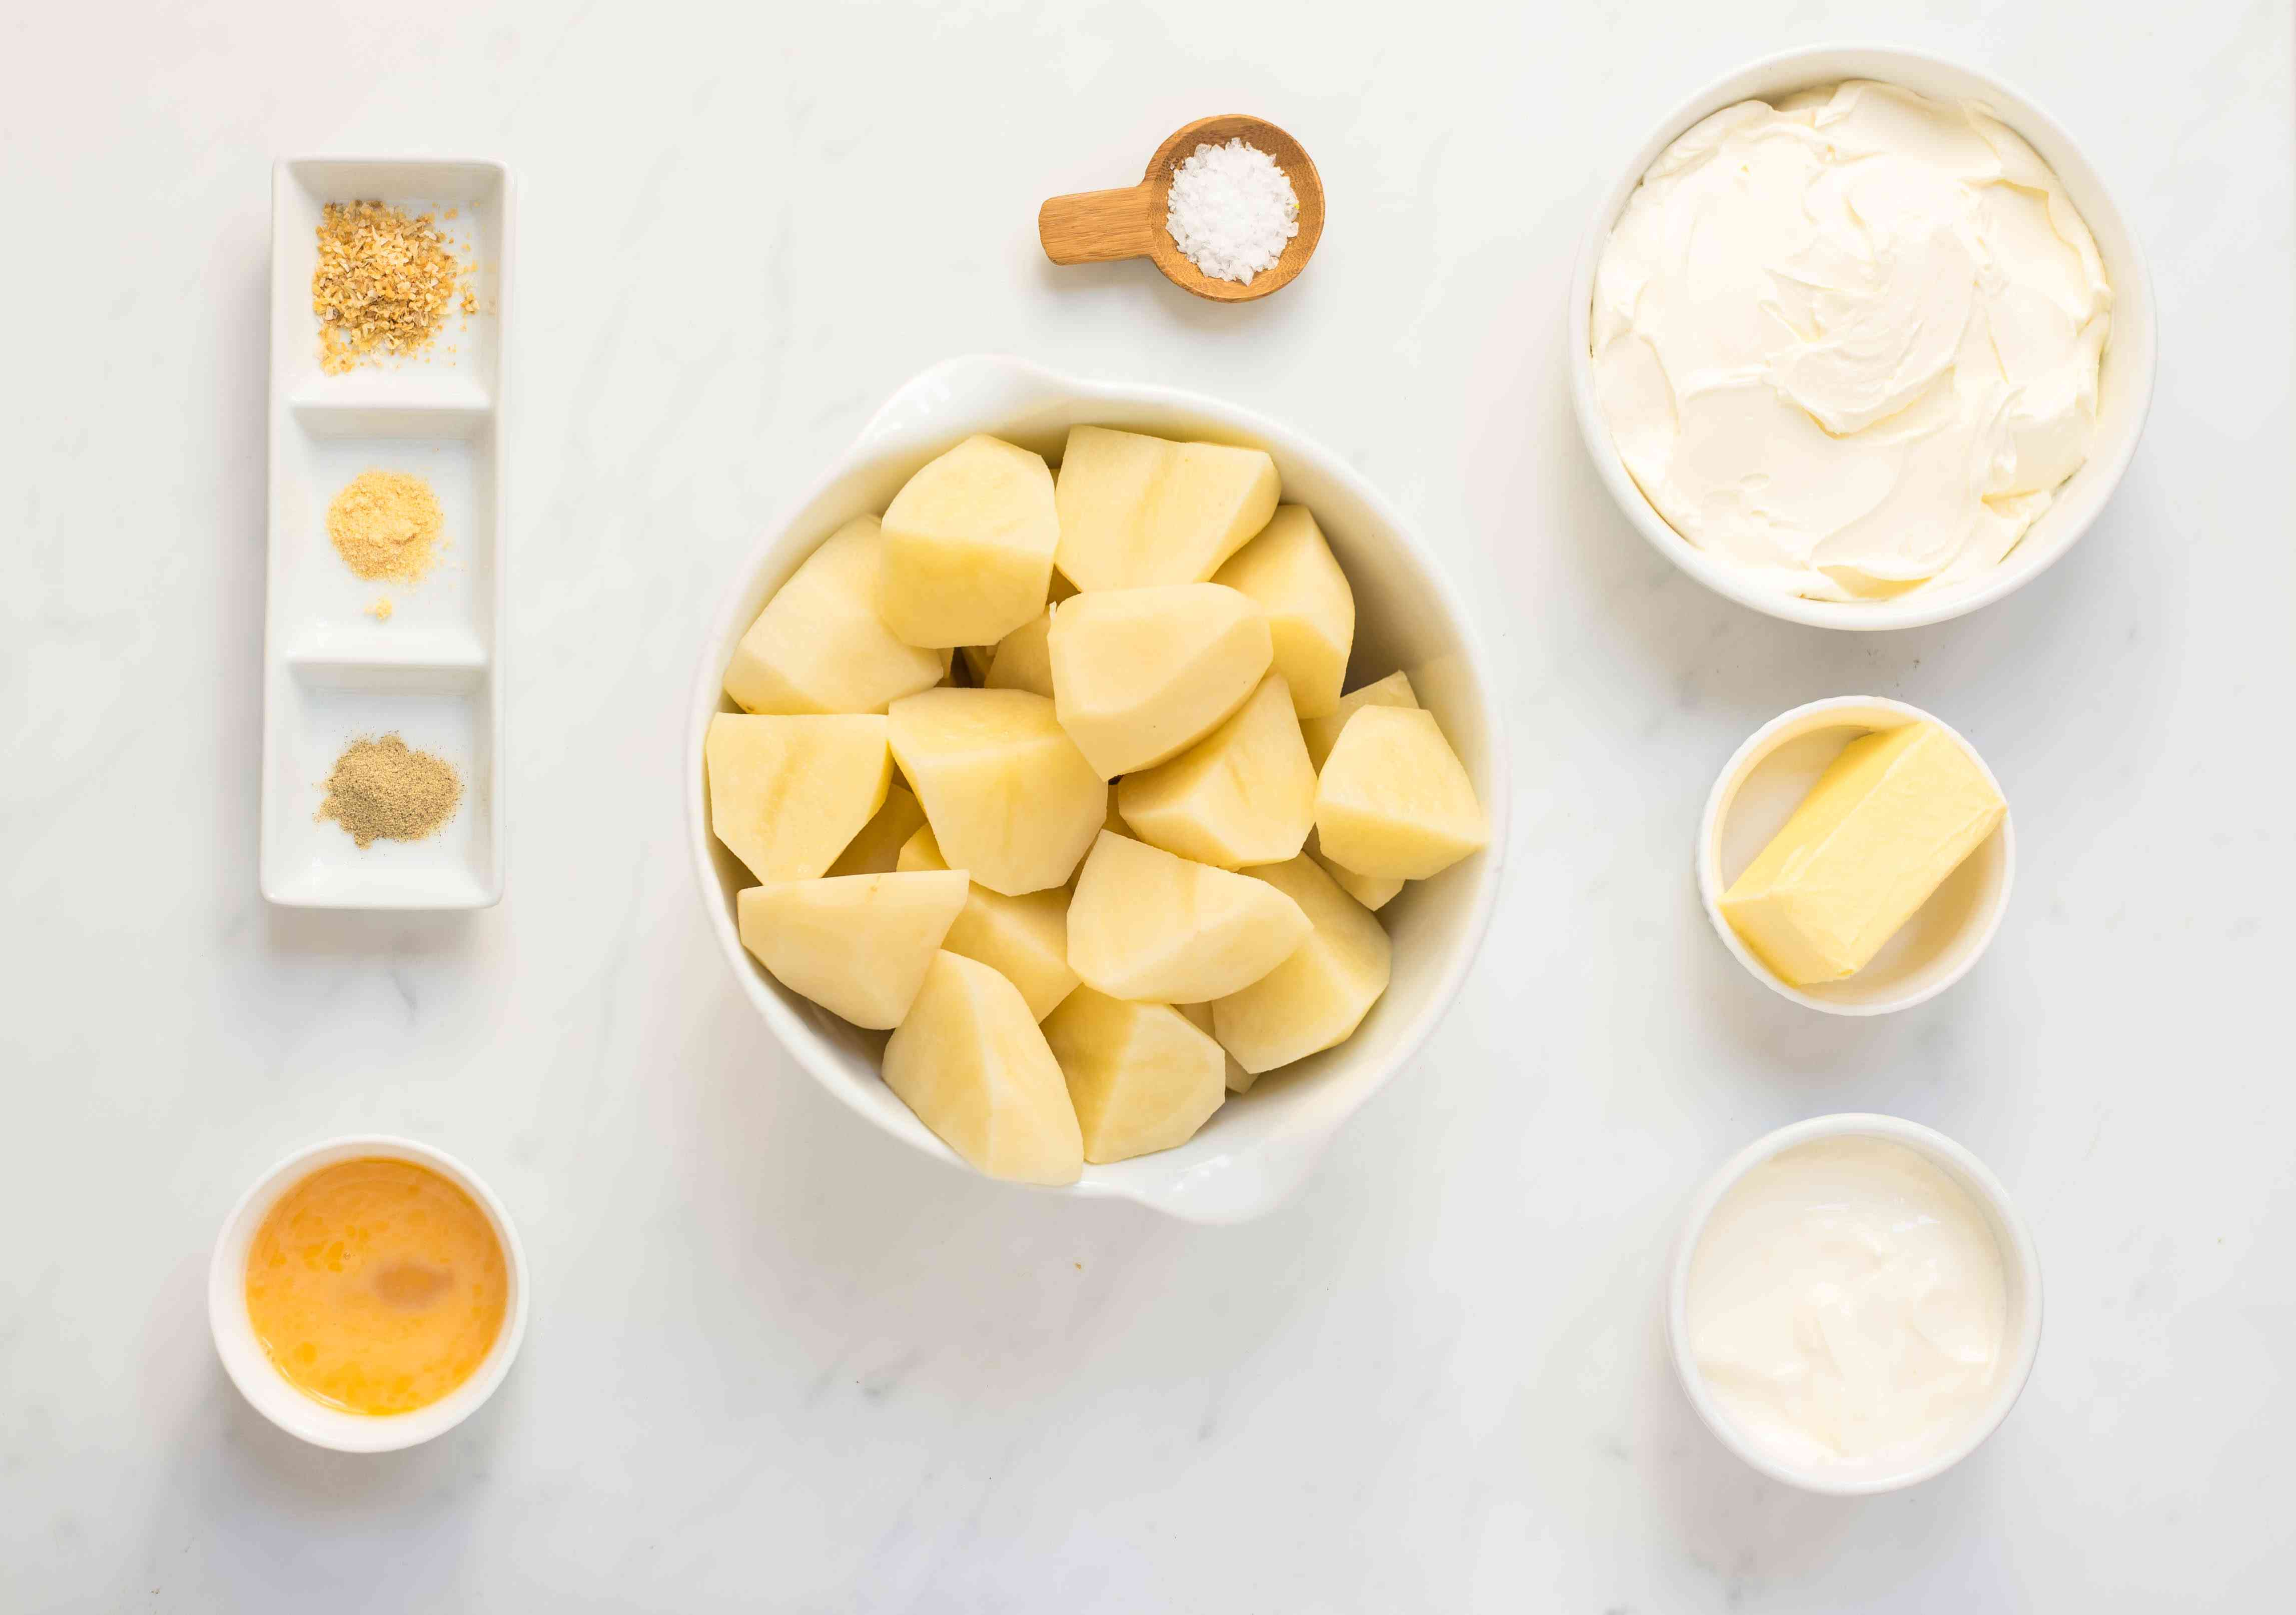 Ingredients for slow cooker mashed potatoes